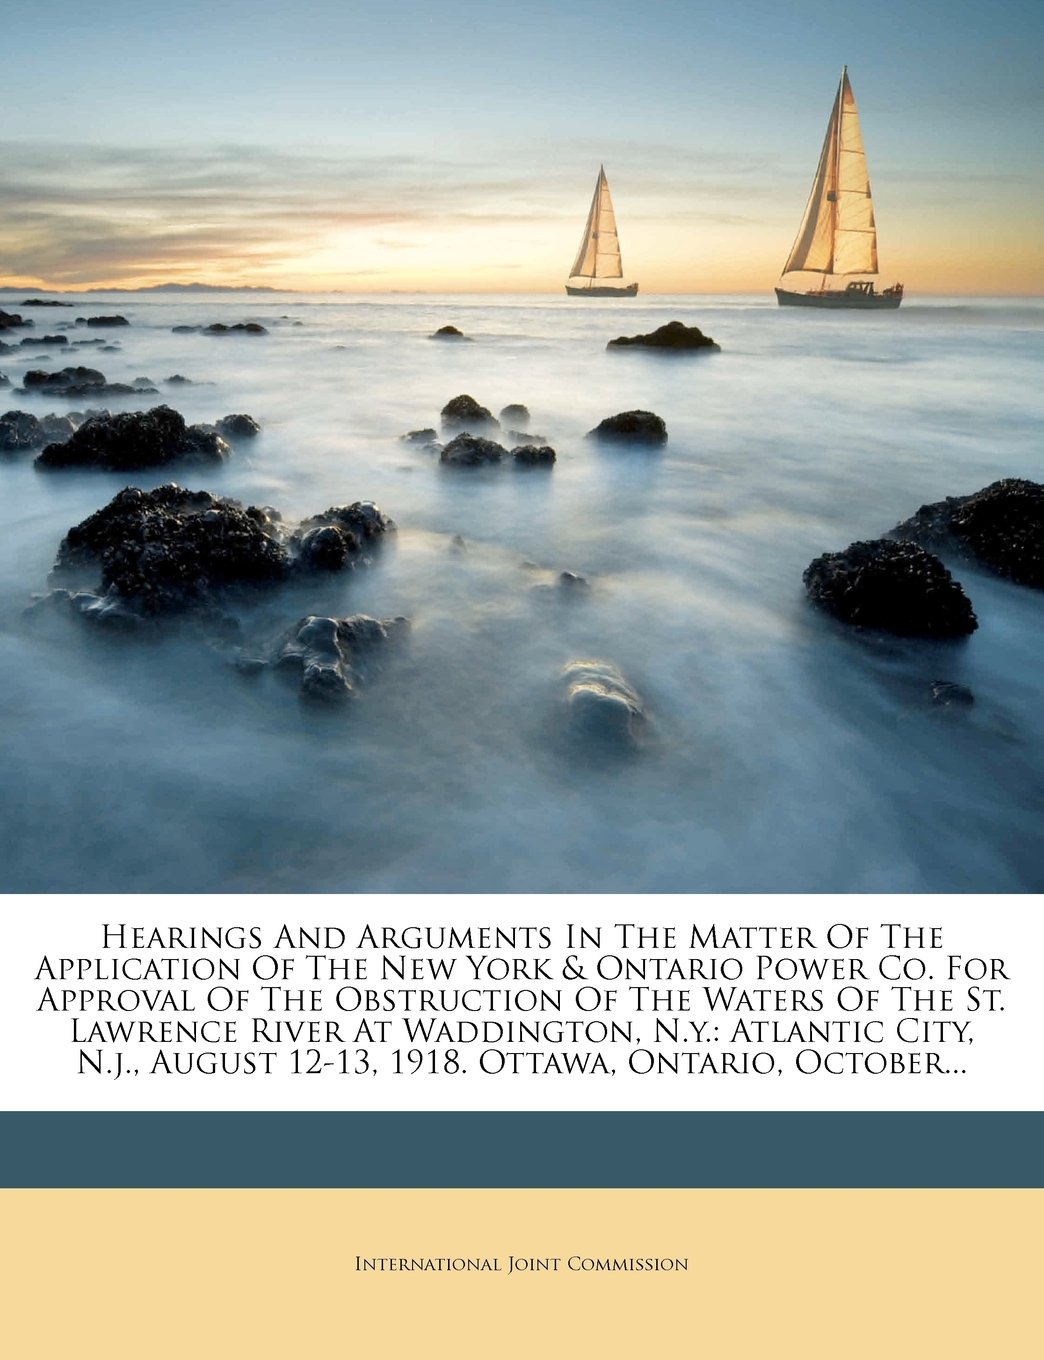 Download Hearings And Arguments In The Matter Of The Application Of The New York & Ontario Power Co. For Approval Of The Obstruction Of The Waters Of The St. ... 12-13, 1918. Ottawa, Ontario, October... PDF